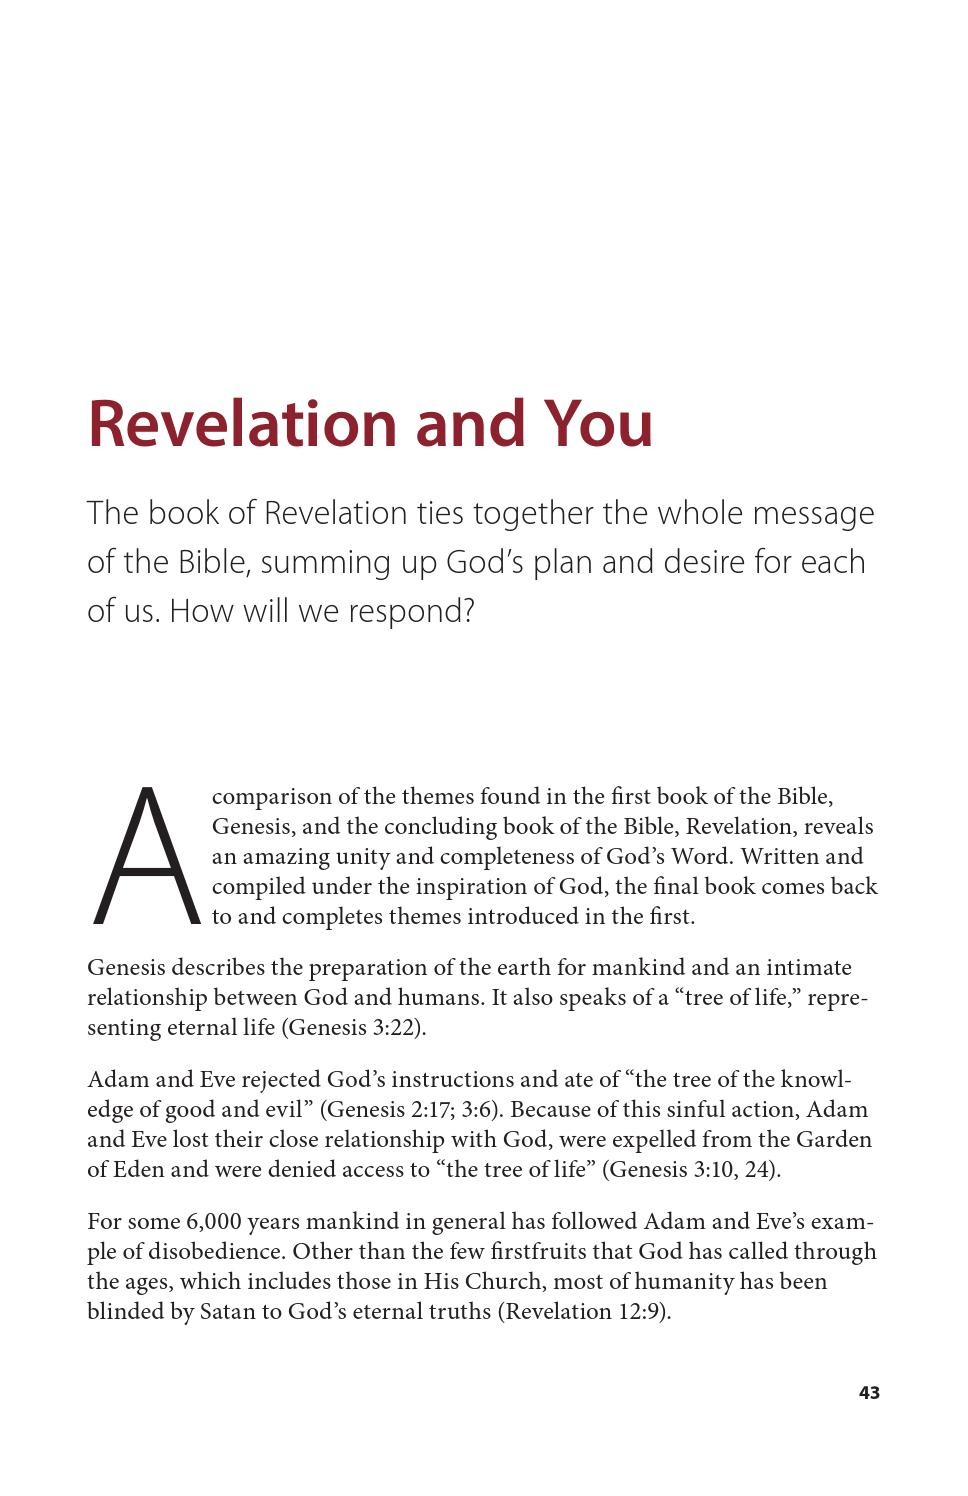 The Book of Revelation: The Storm Before the Calm by Life